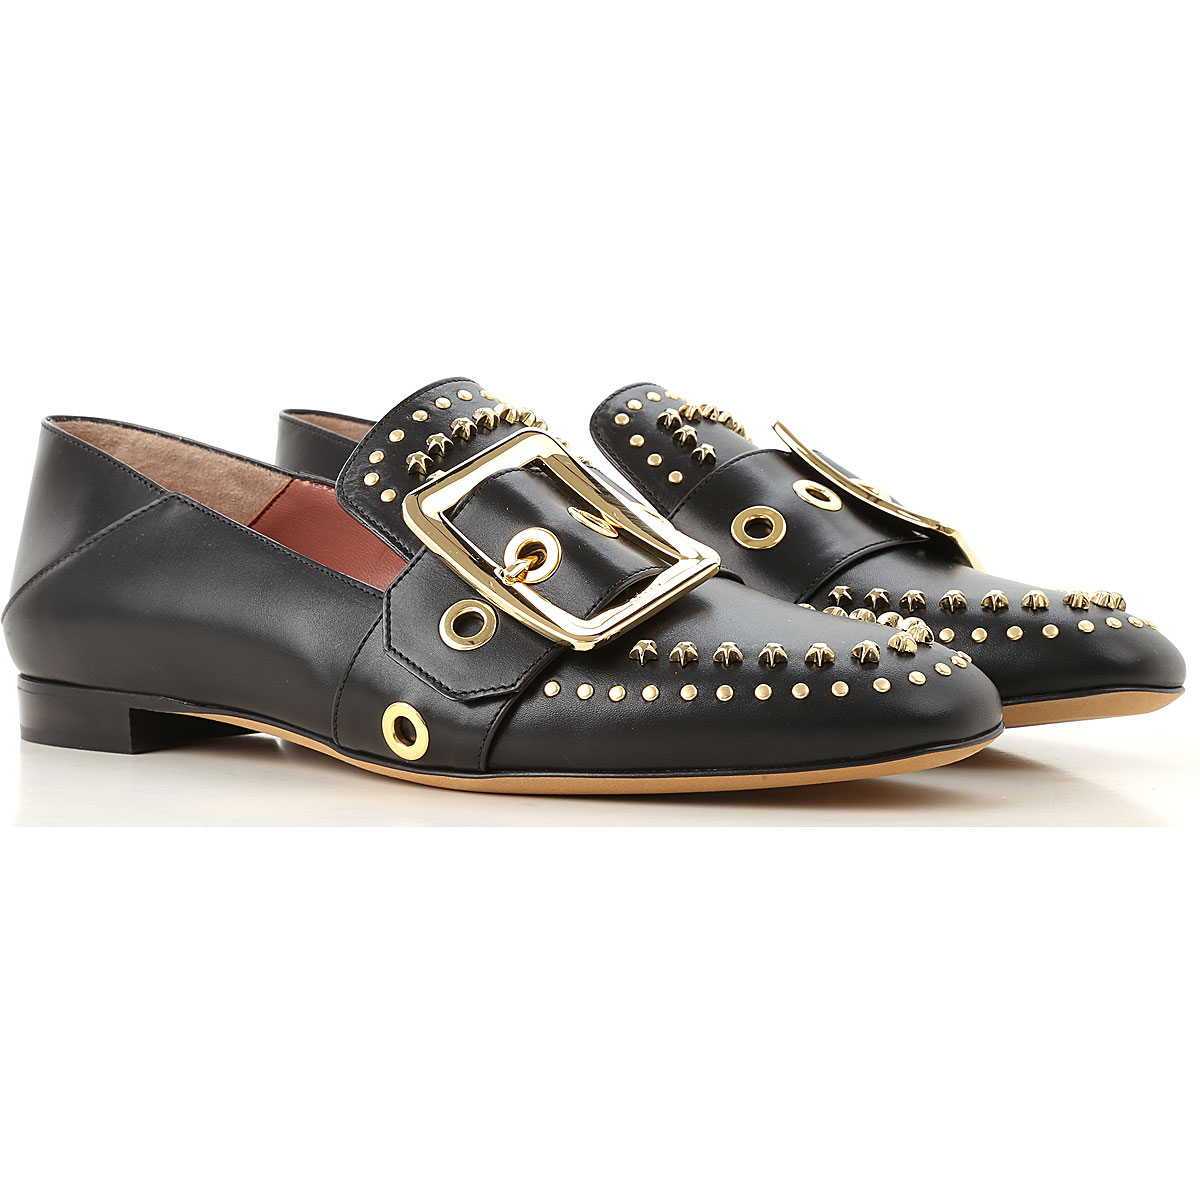 Image of Bally Loafers for Women, Black, Leather, 2017, 8.5